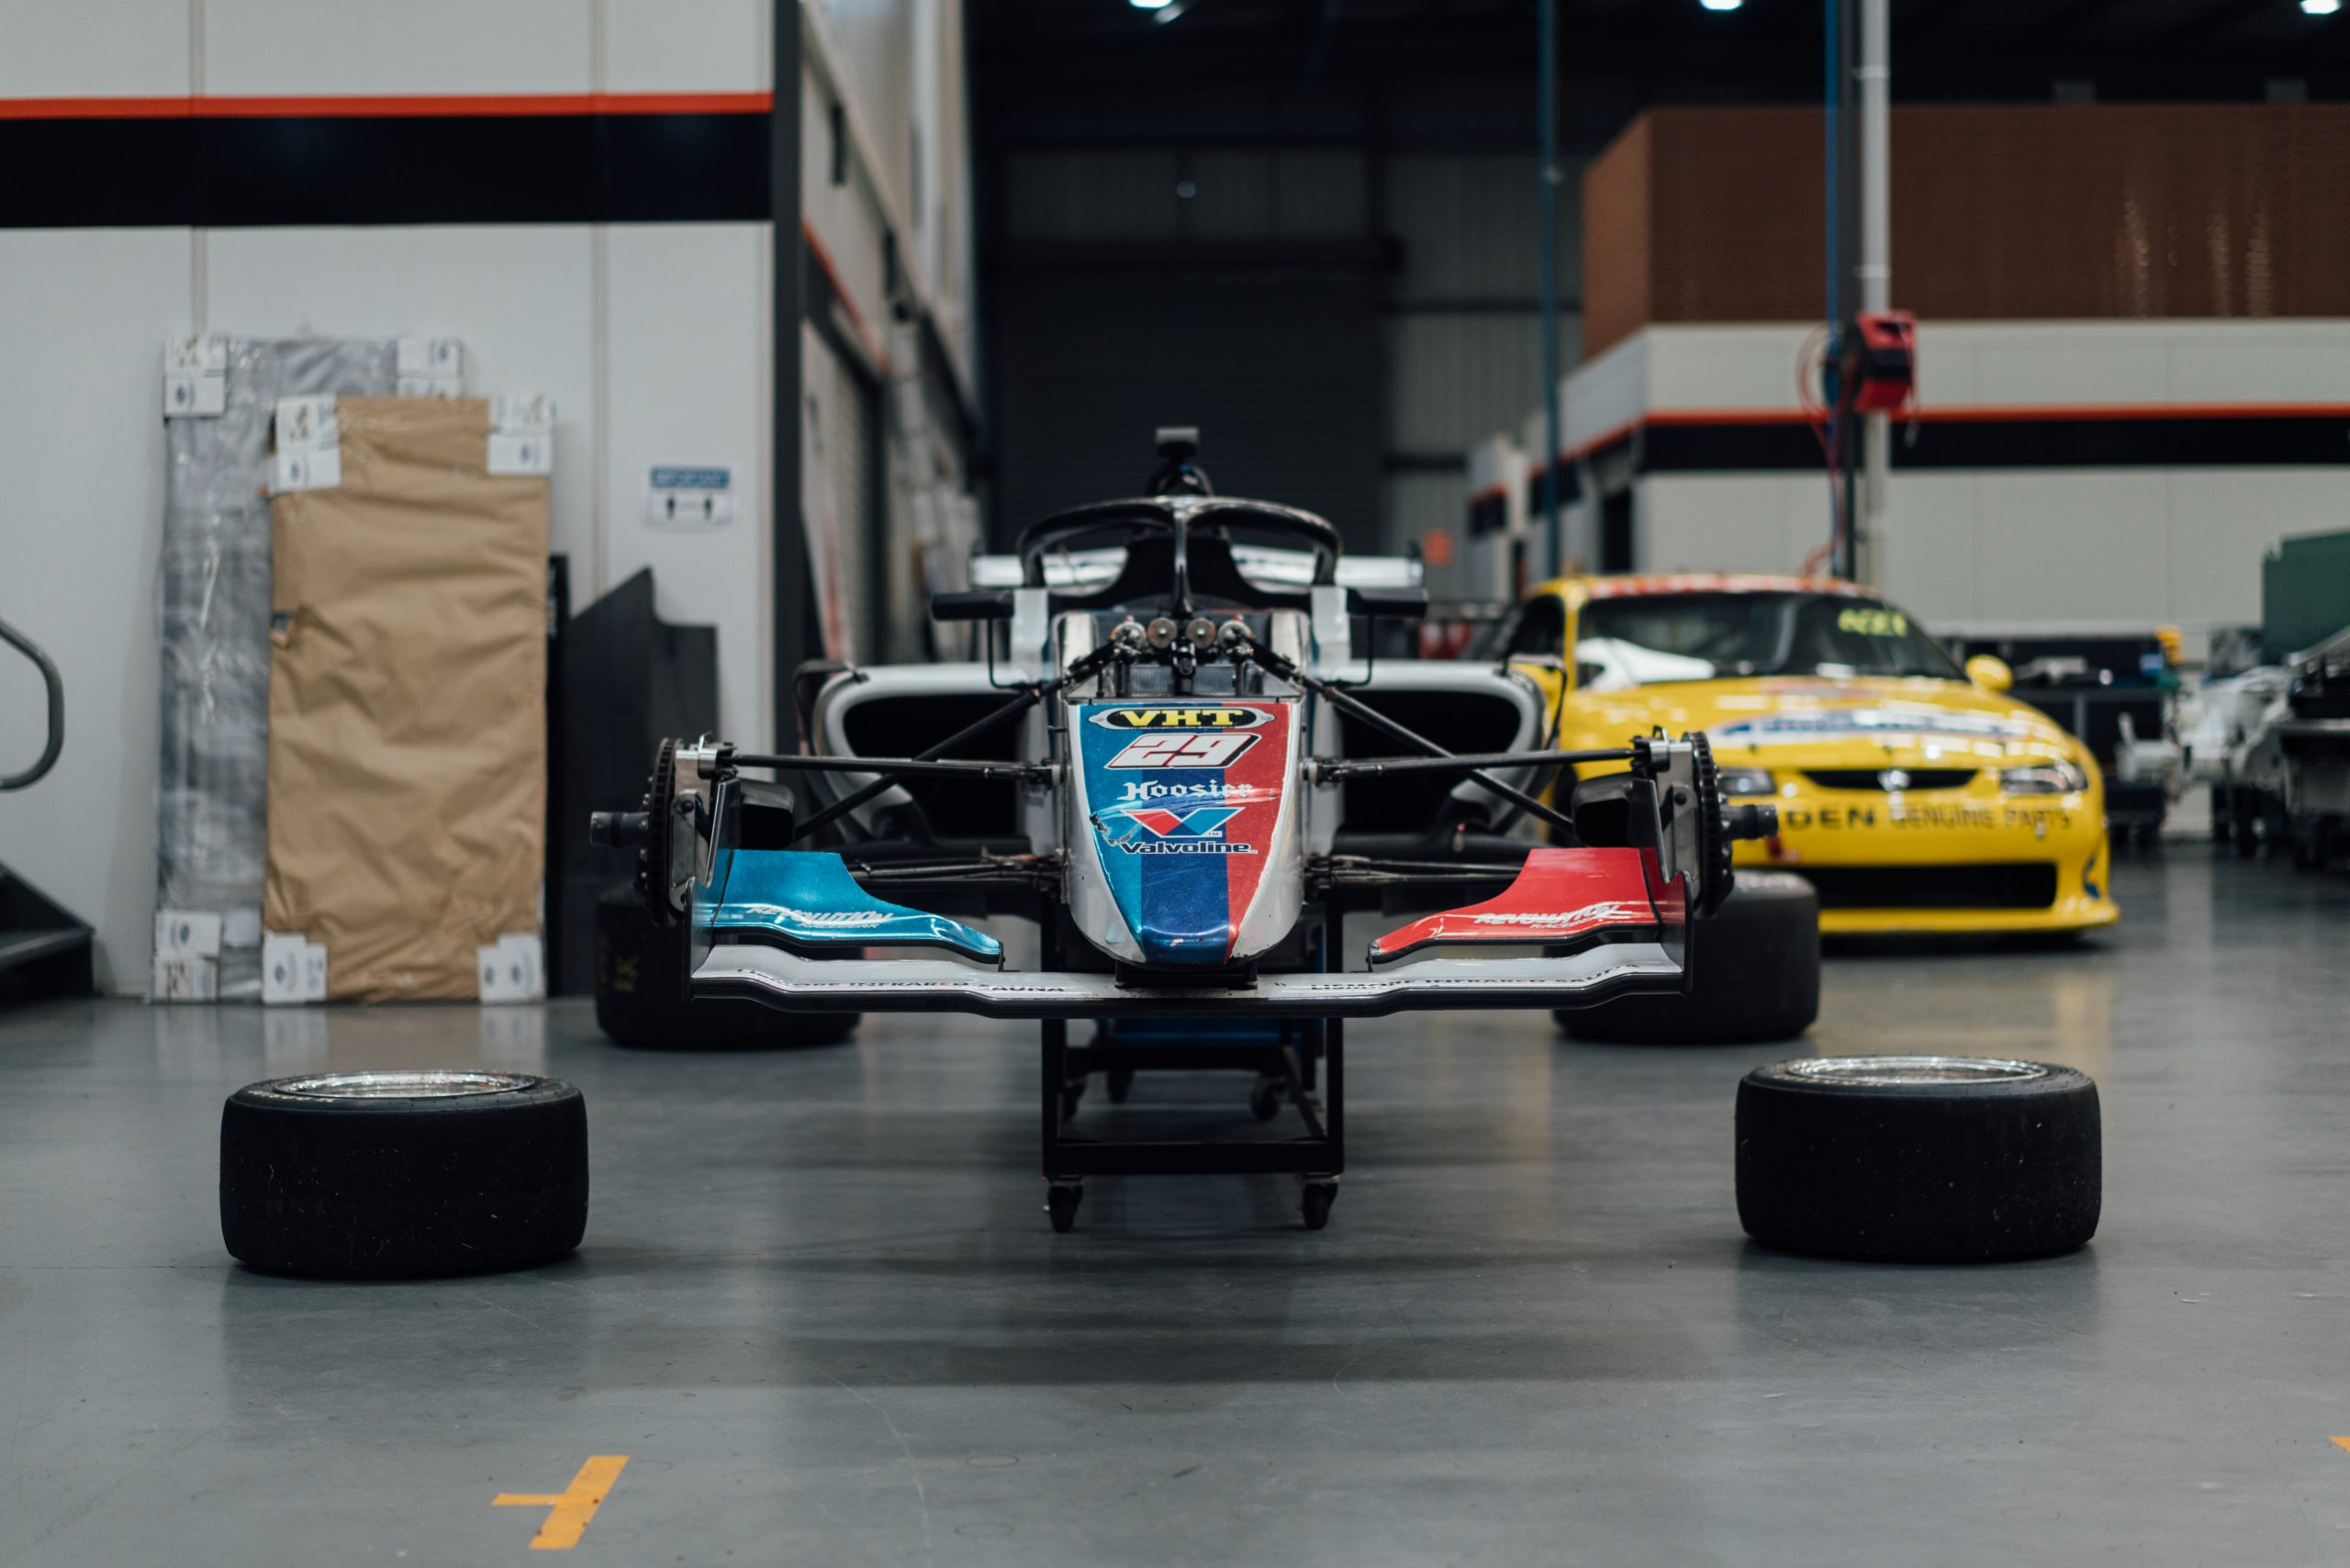 S5000 Tech Talk brought to you by Valvoline – Introduction